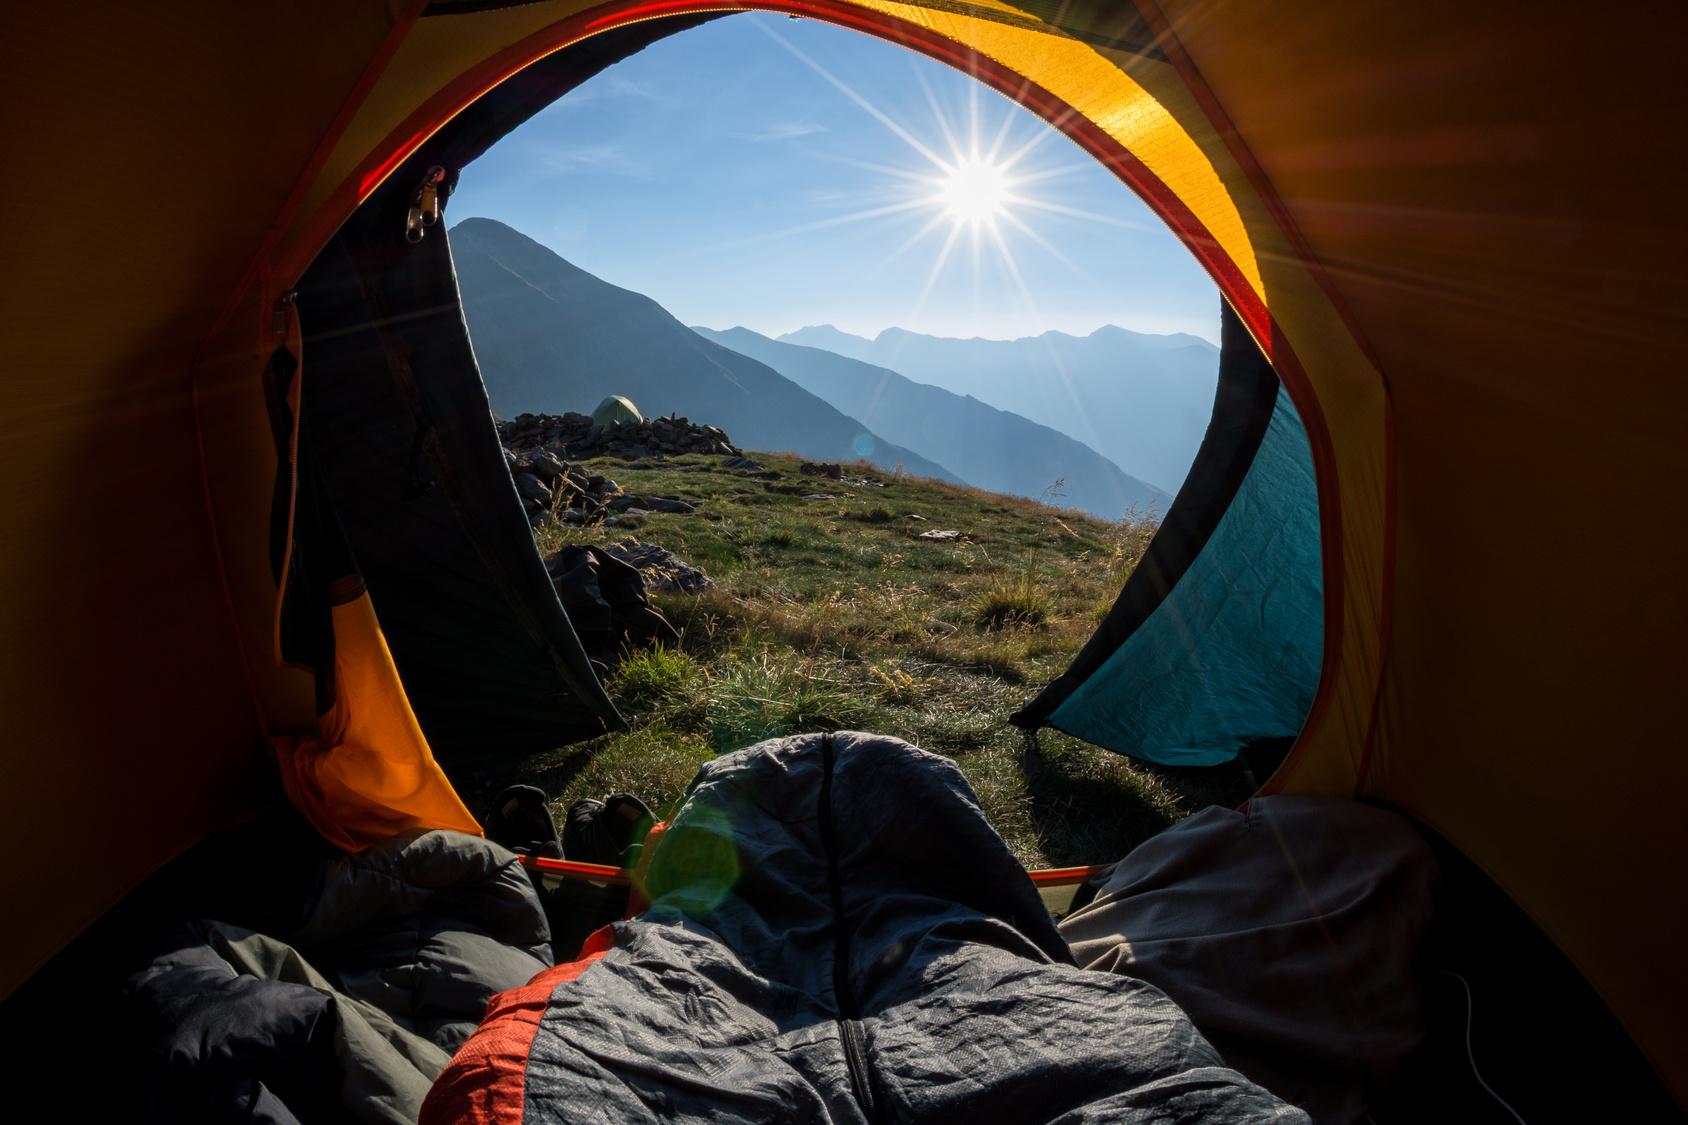 Waking up in the tent